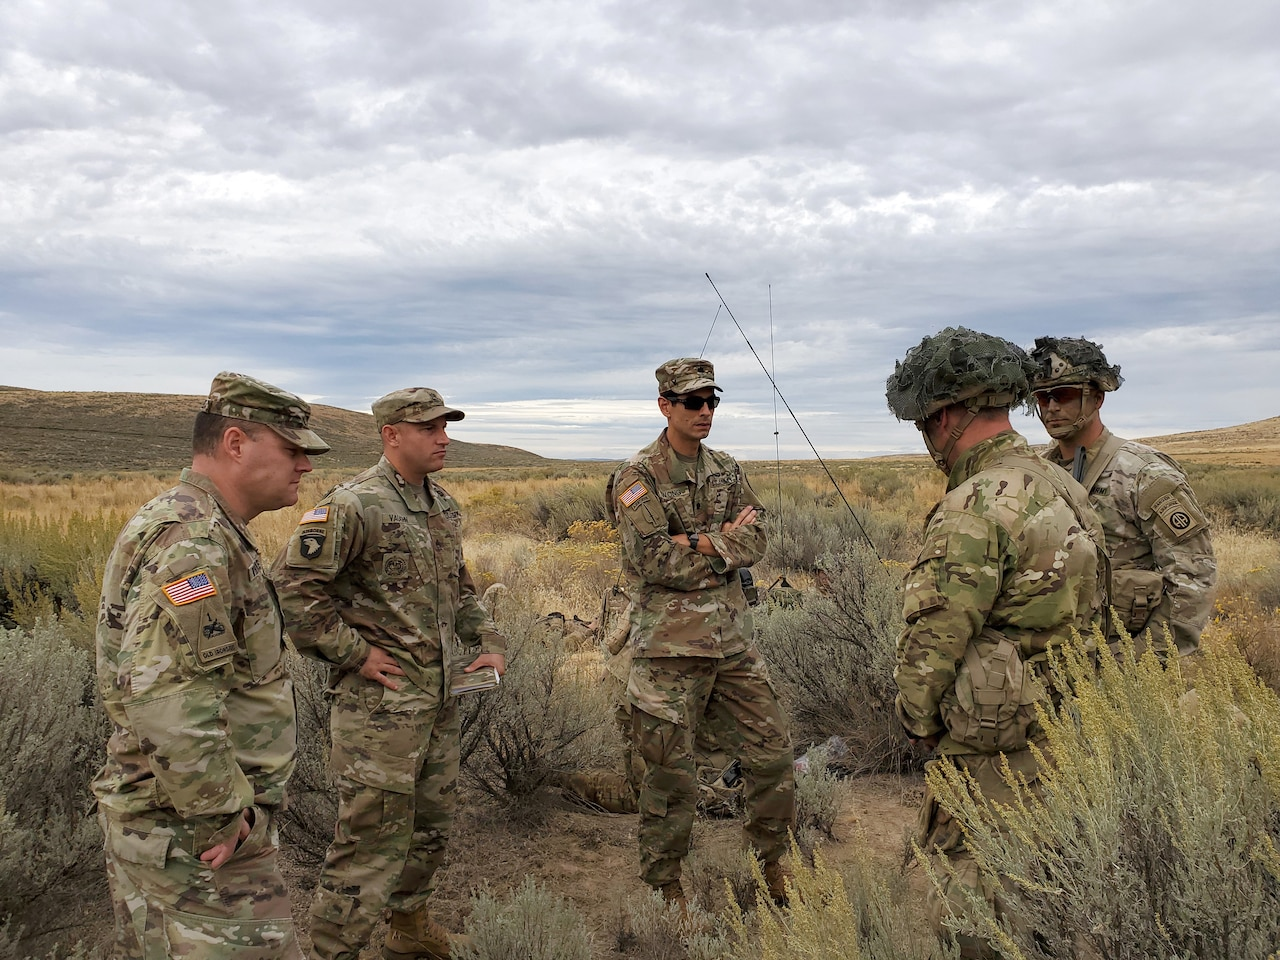 Soldiers stand in group in desert